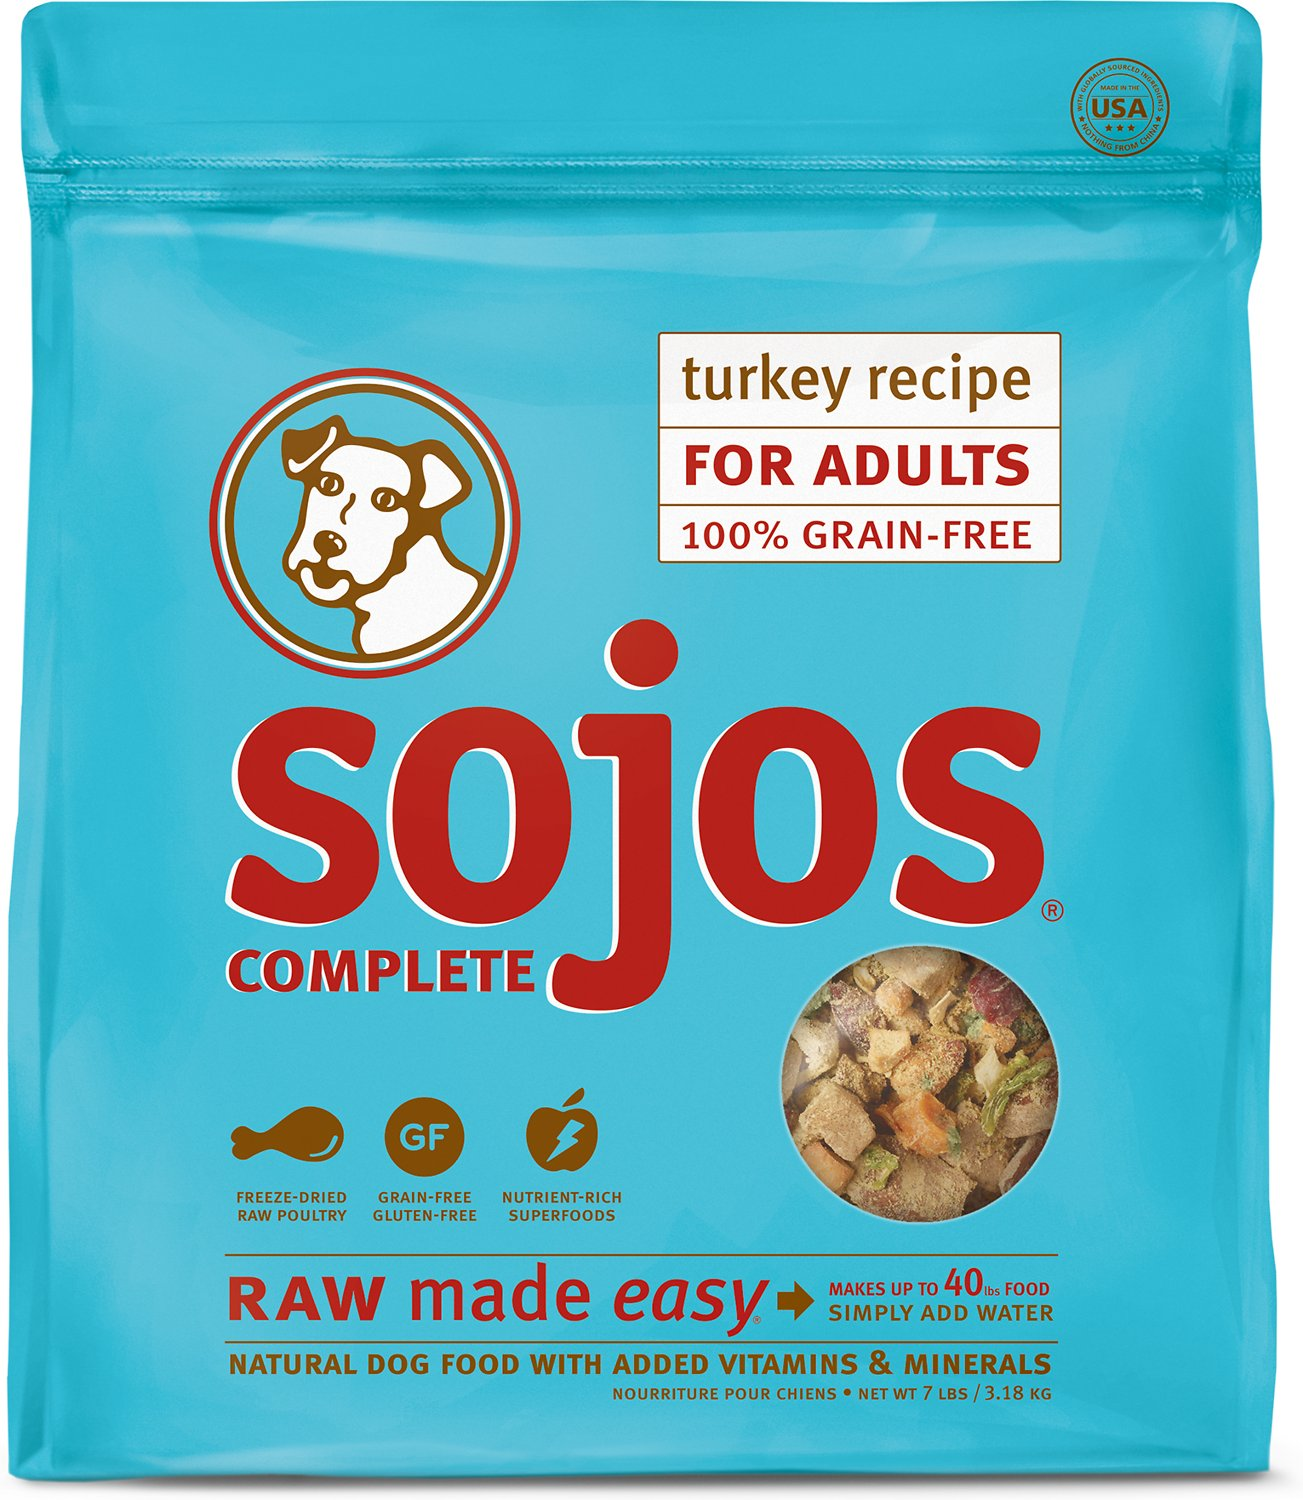 Sojos Complete Turkey Recipe Adult Grain-Free Freeze-Dried Raw Dog Food Image